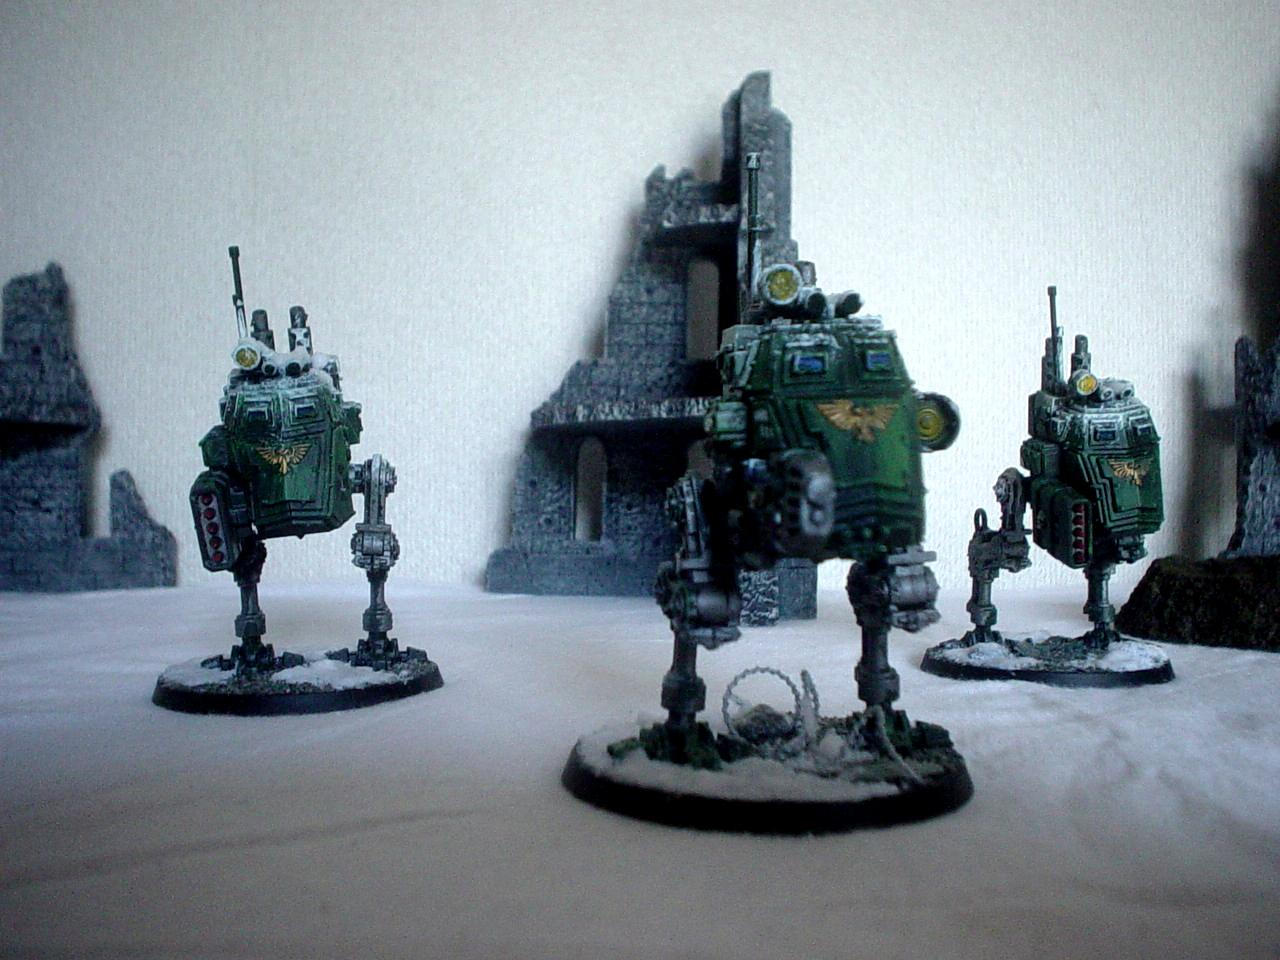 Imperial Guard, Sentinel, Snow, Urban Base, Warhammer 40,000, Weathered